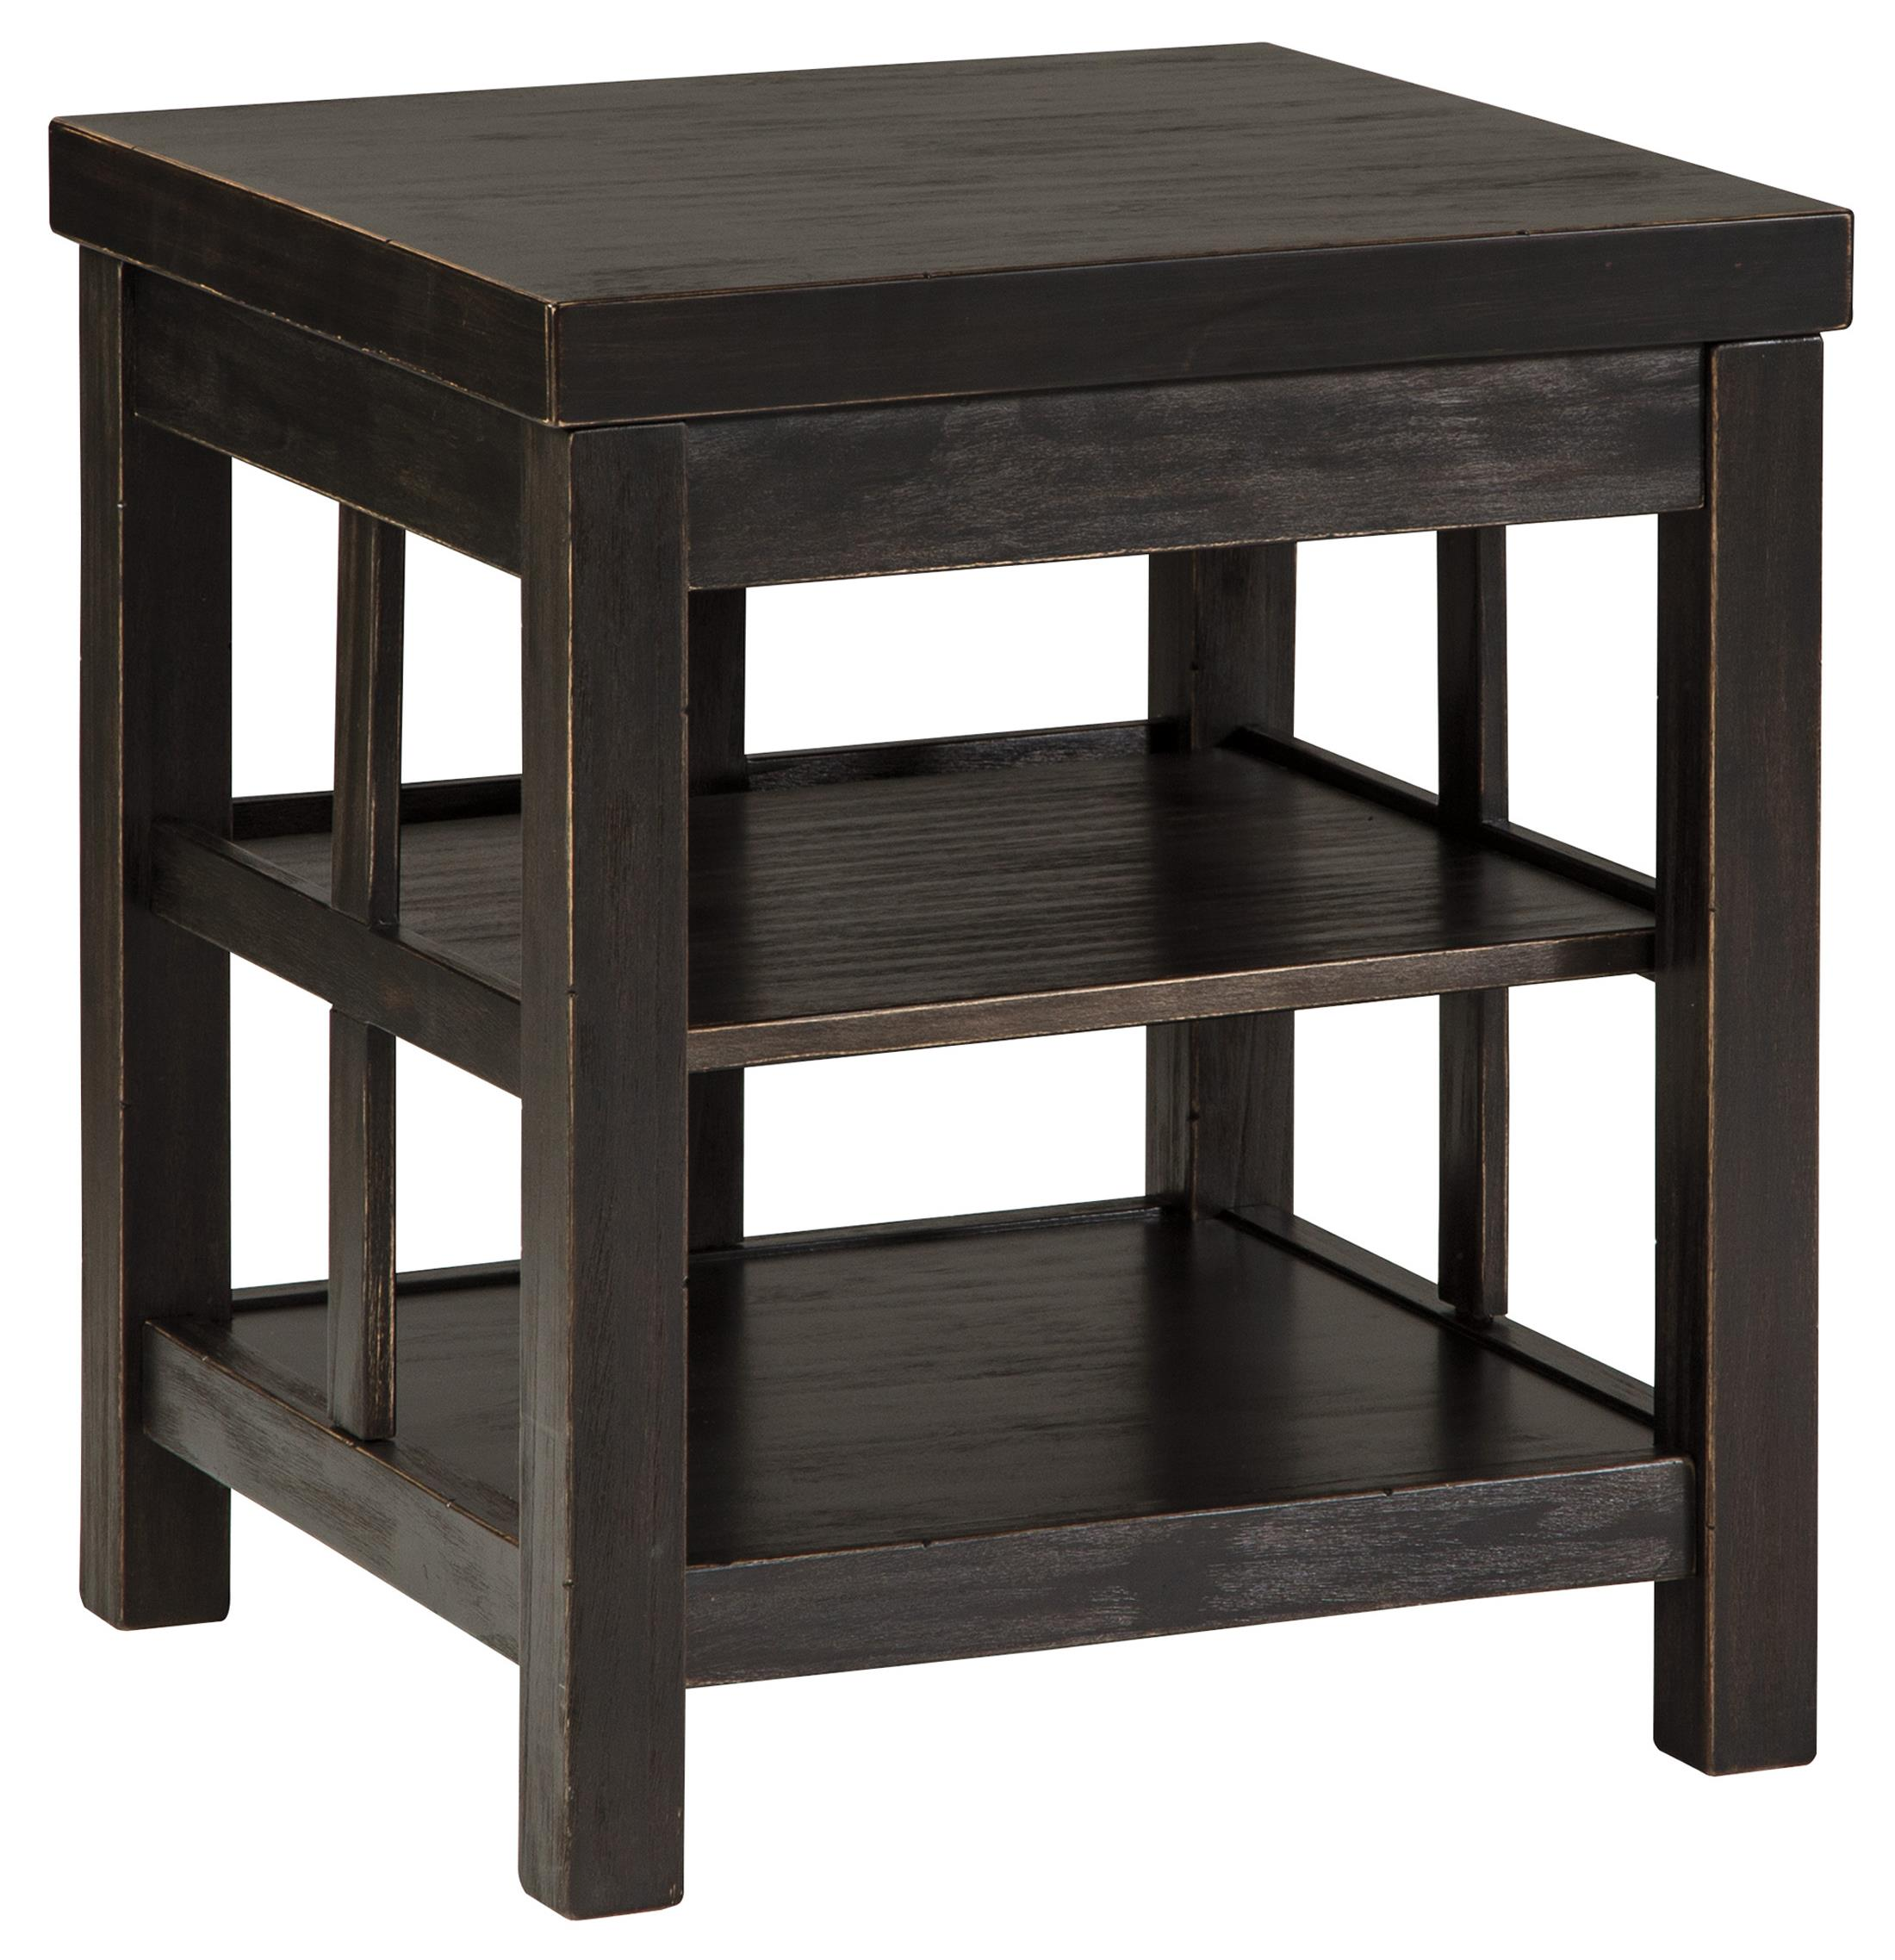 rustic distressed black square end table with shelves signature products design ashley color gavelston accent drawer classic furniture lucite lamps usb antique oak bedside tables